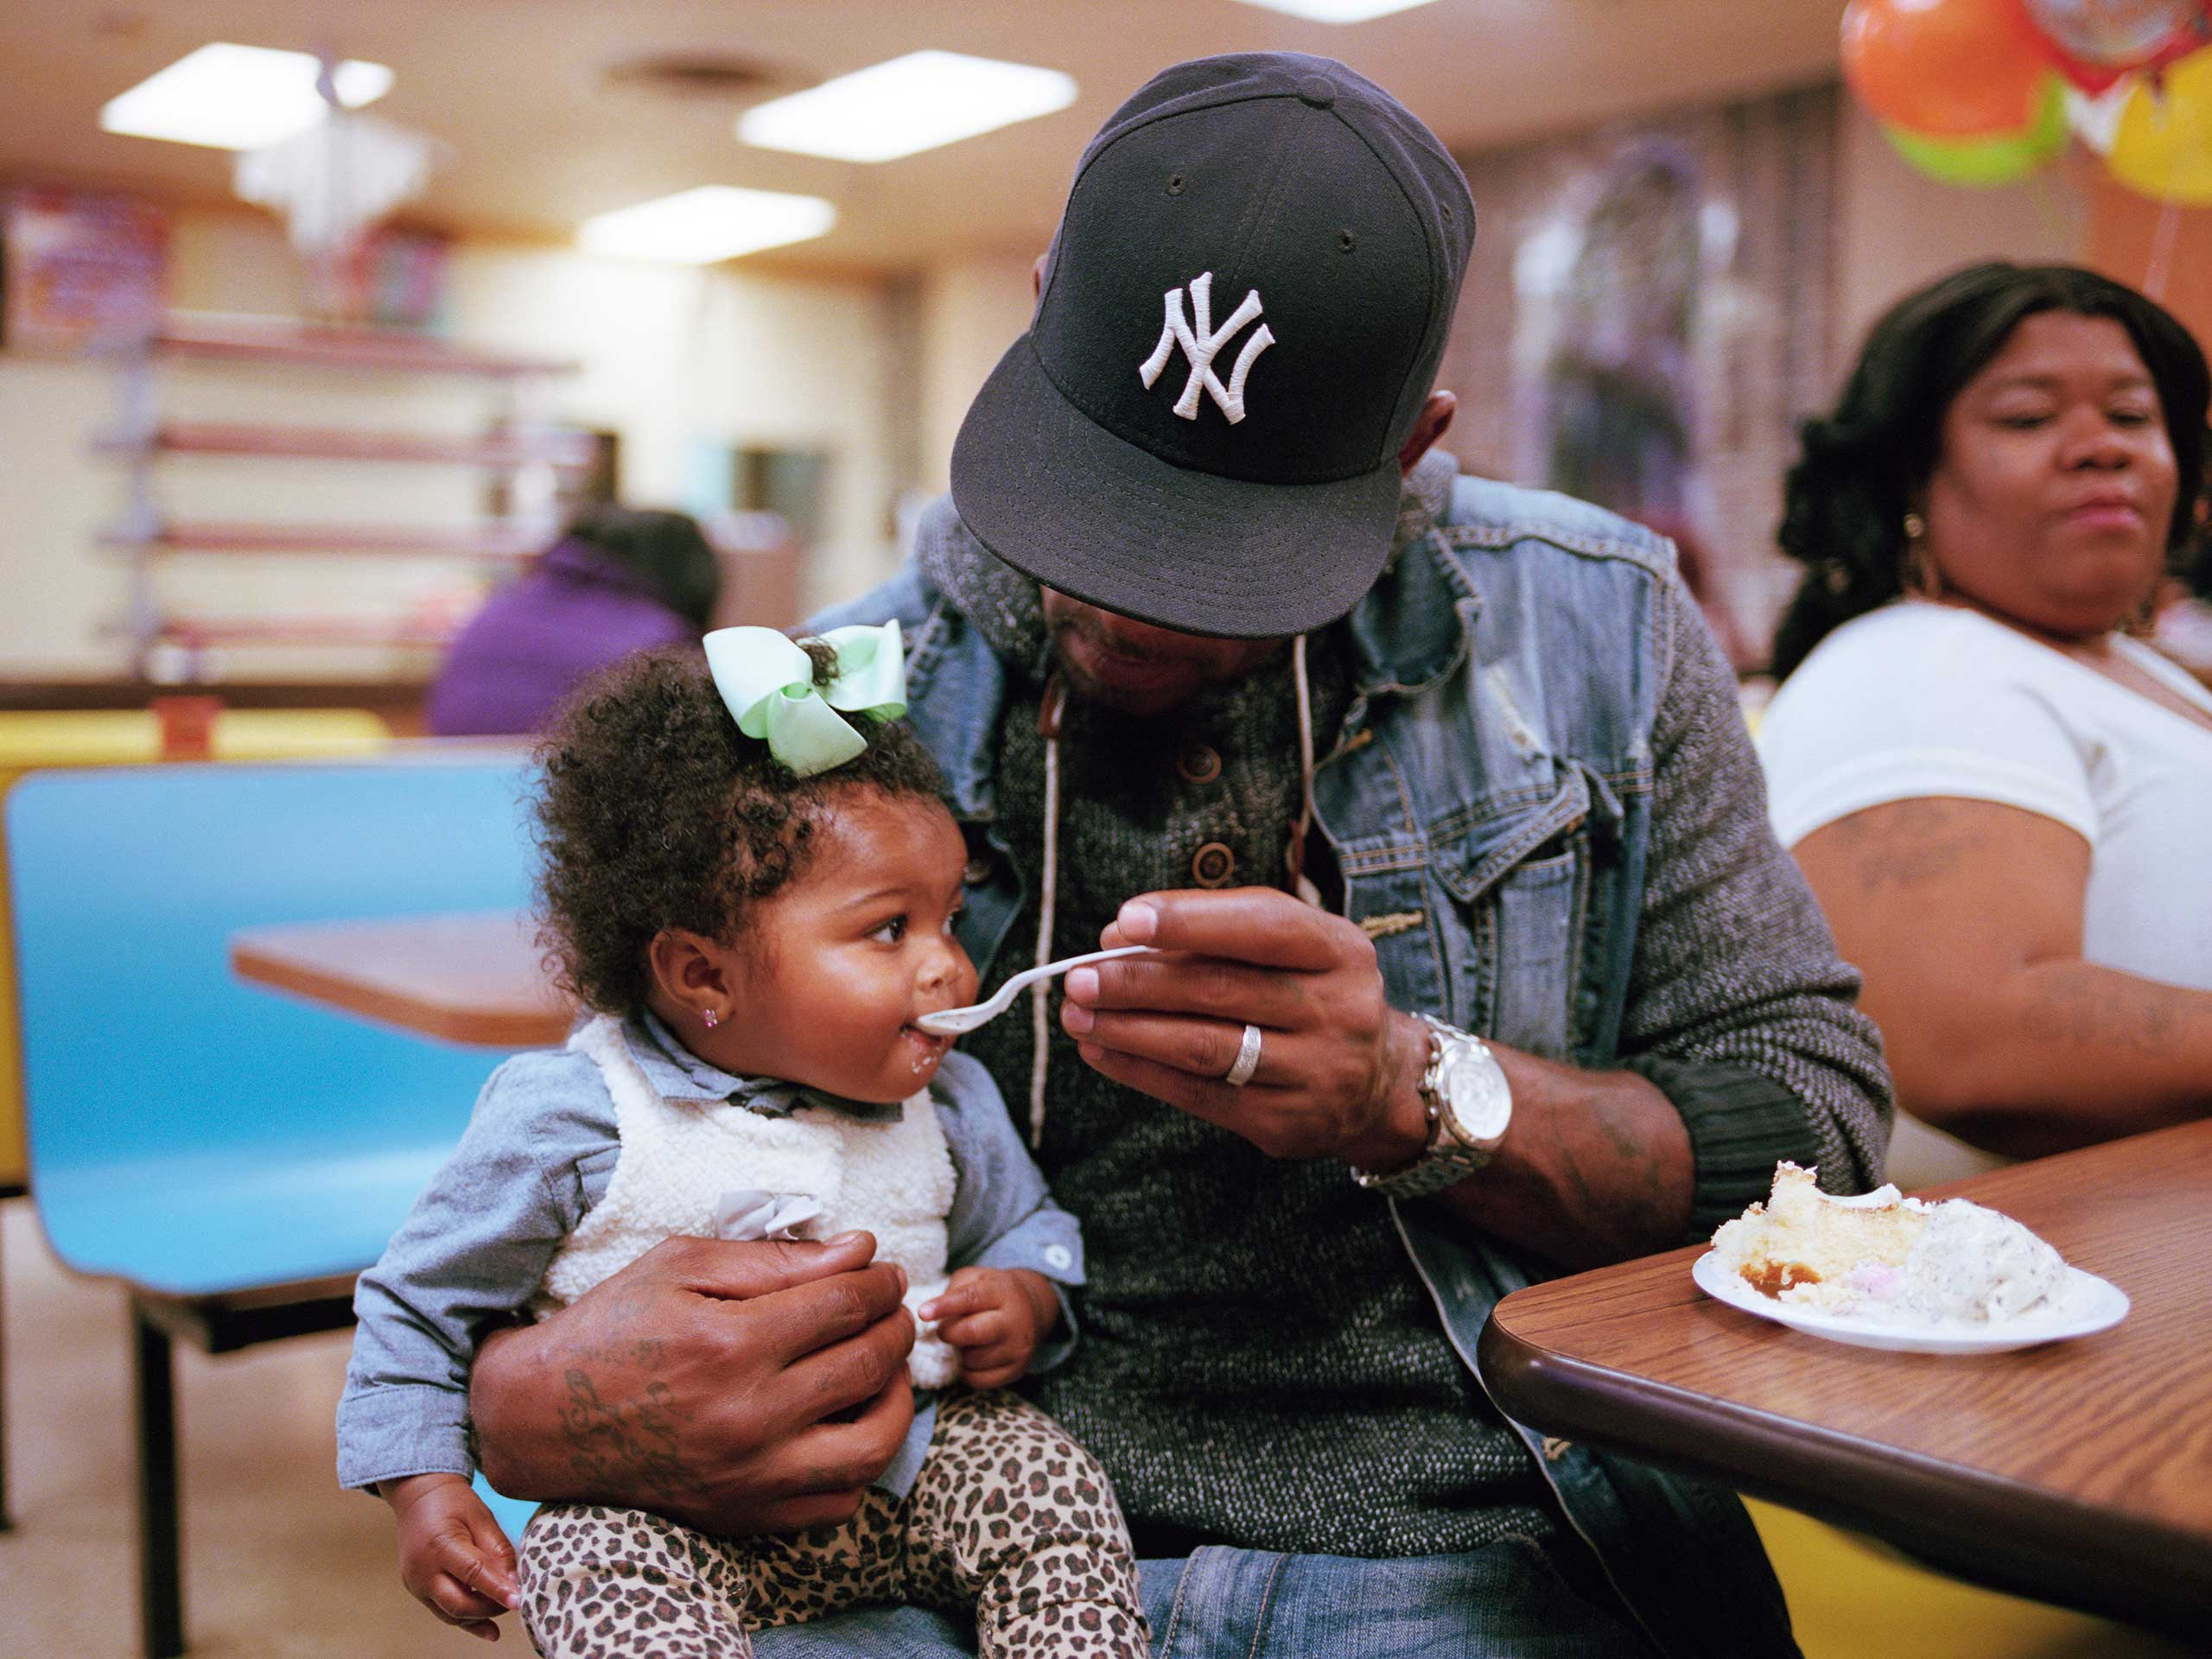 Duke Thomas feeds cake to his 8-month-old daughter Carter. They were at Shake and Bake, a local skating and bowling fun center, for a birthday party.